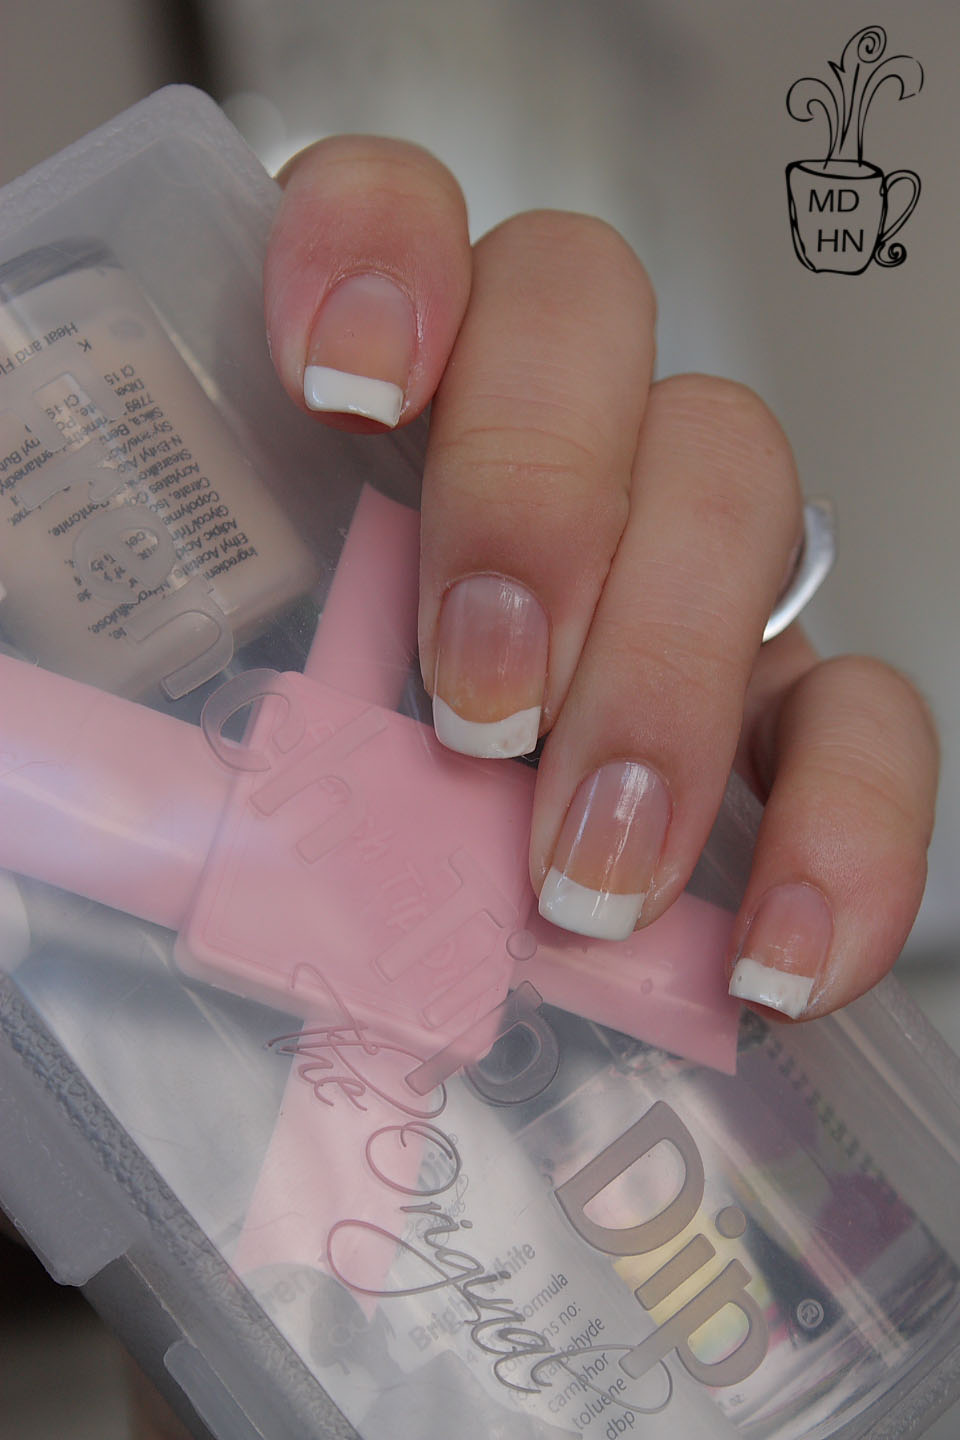 Mommy Does Her Nails: French Tip Dip Kit: Review (photo heavy)